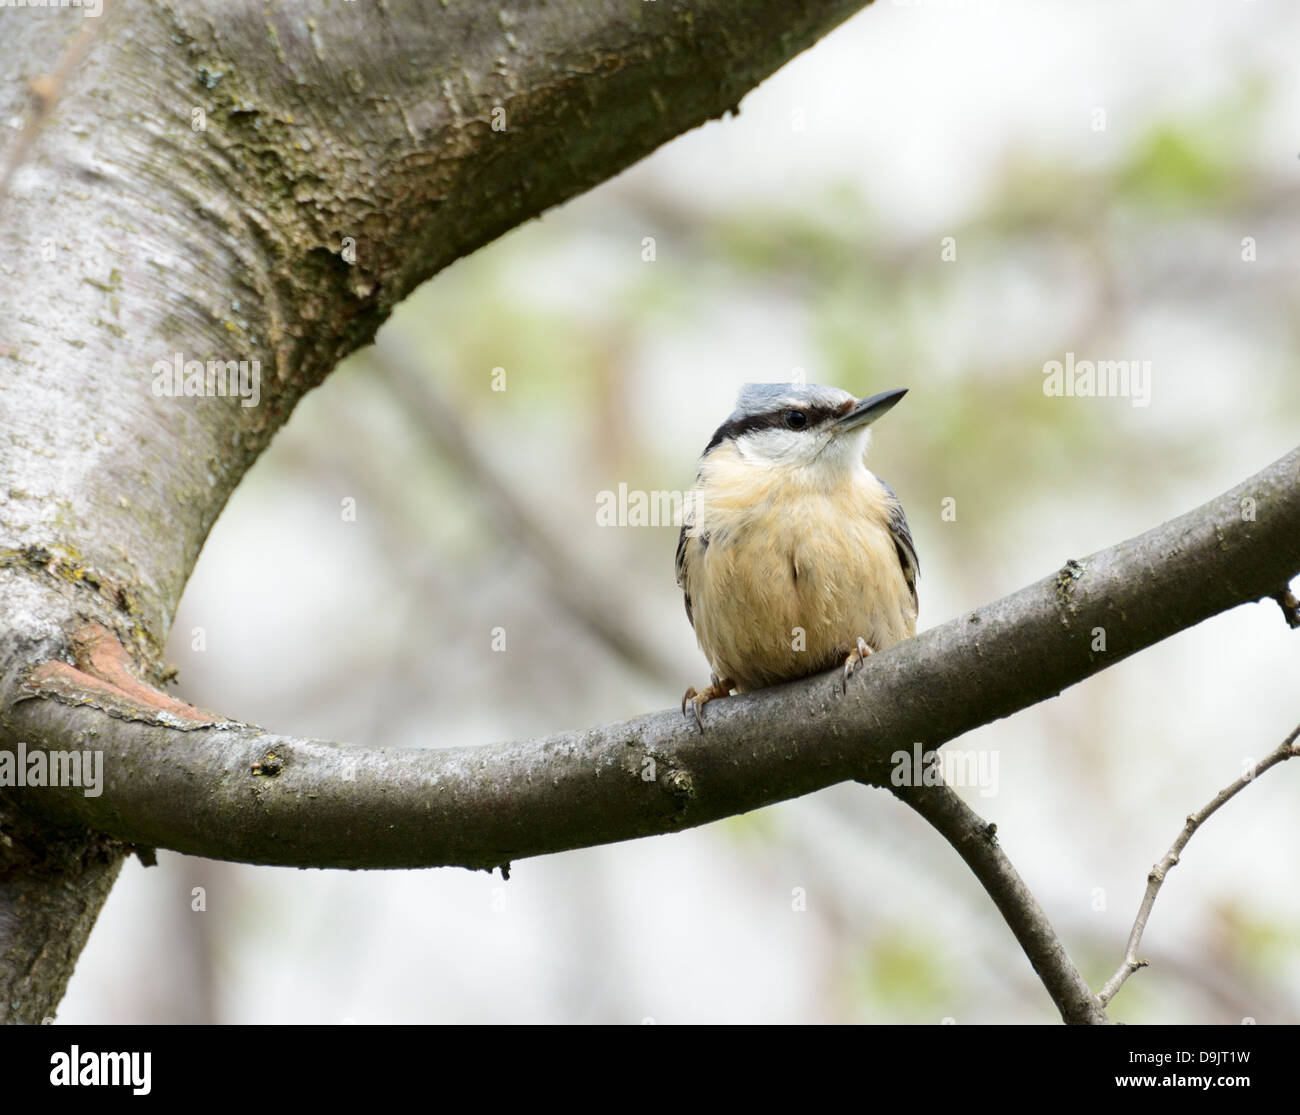 Eurasian Nuthhatch - a small passerine bird - Stock Image